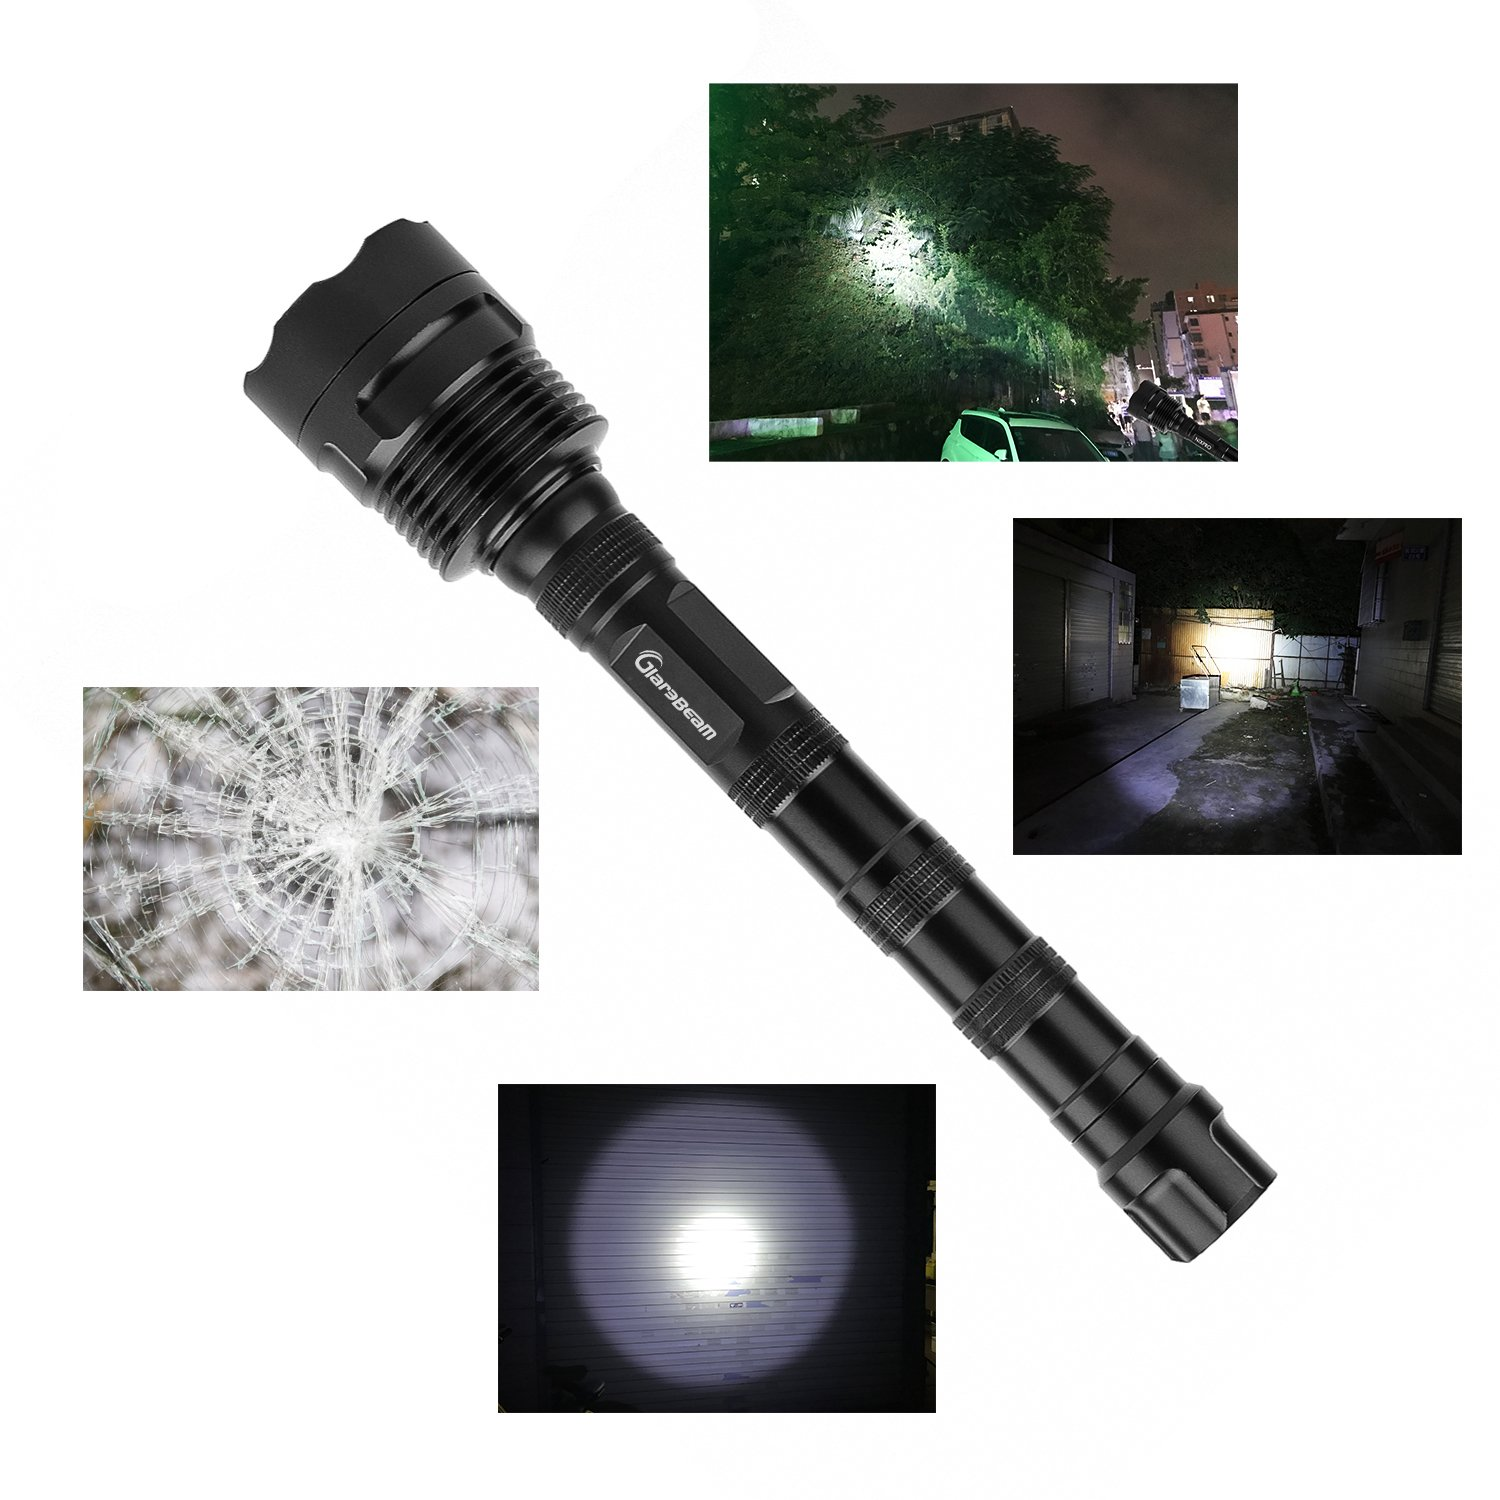 GiareBeam LED Flashlight 12X CREE XM-L T6 10000 Lumens Super Bright Waterproof 5 Modes Torch for Home and Outdoor Activities